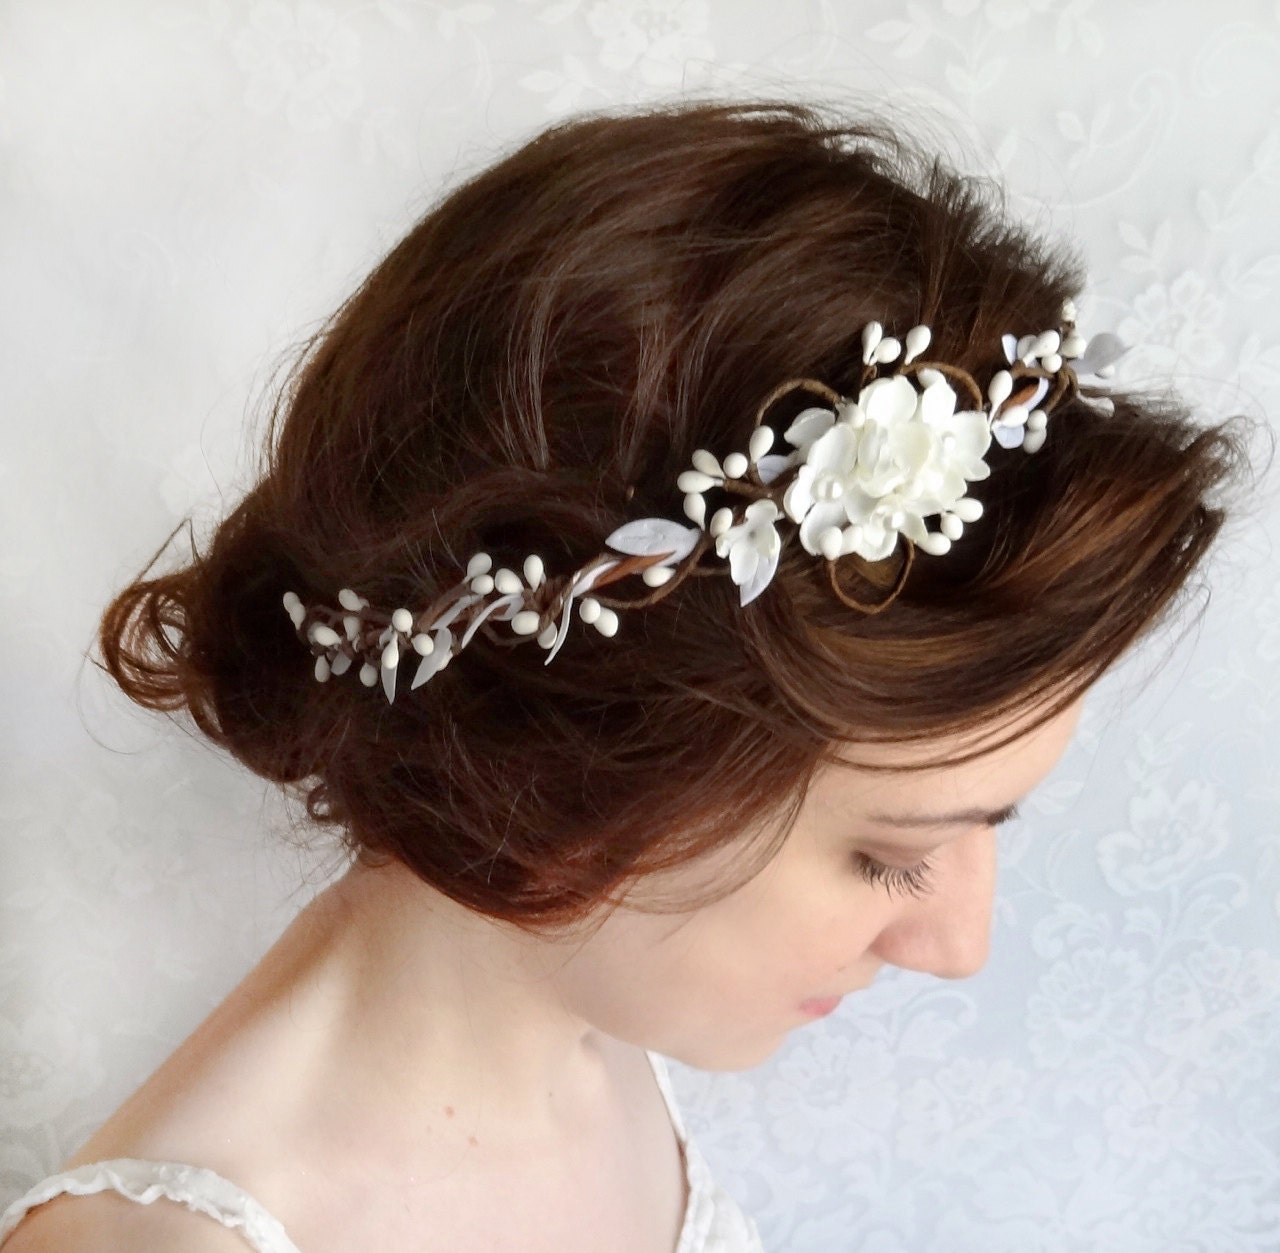 Flower Wedding Headpieces: Bridal Hair Piece Wedding Headpiece White Floral Headband